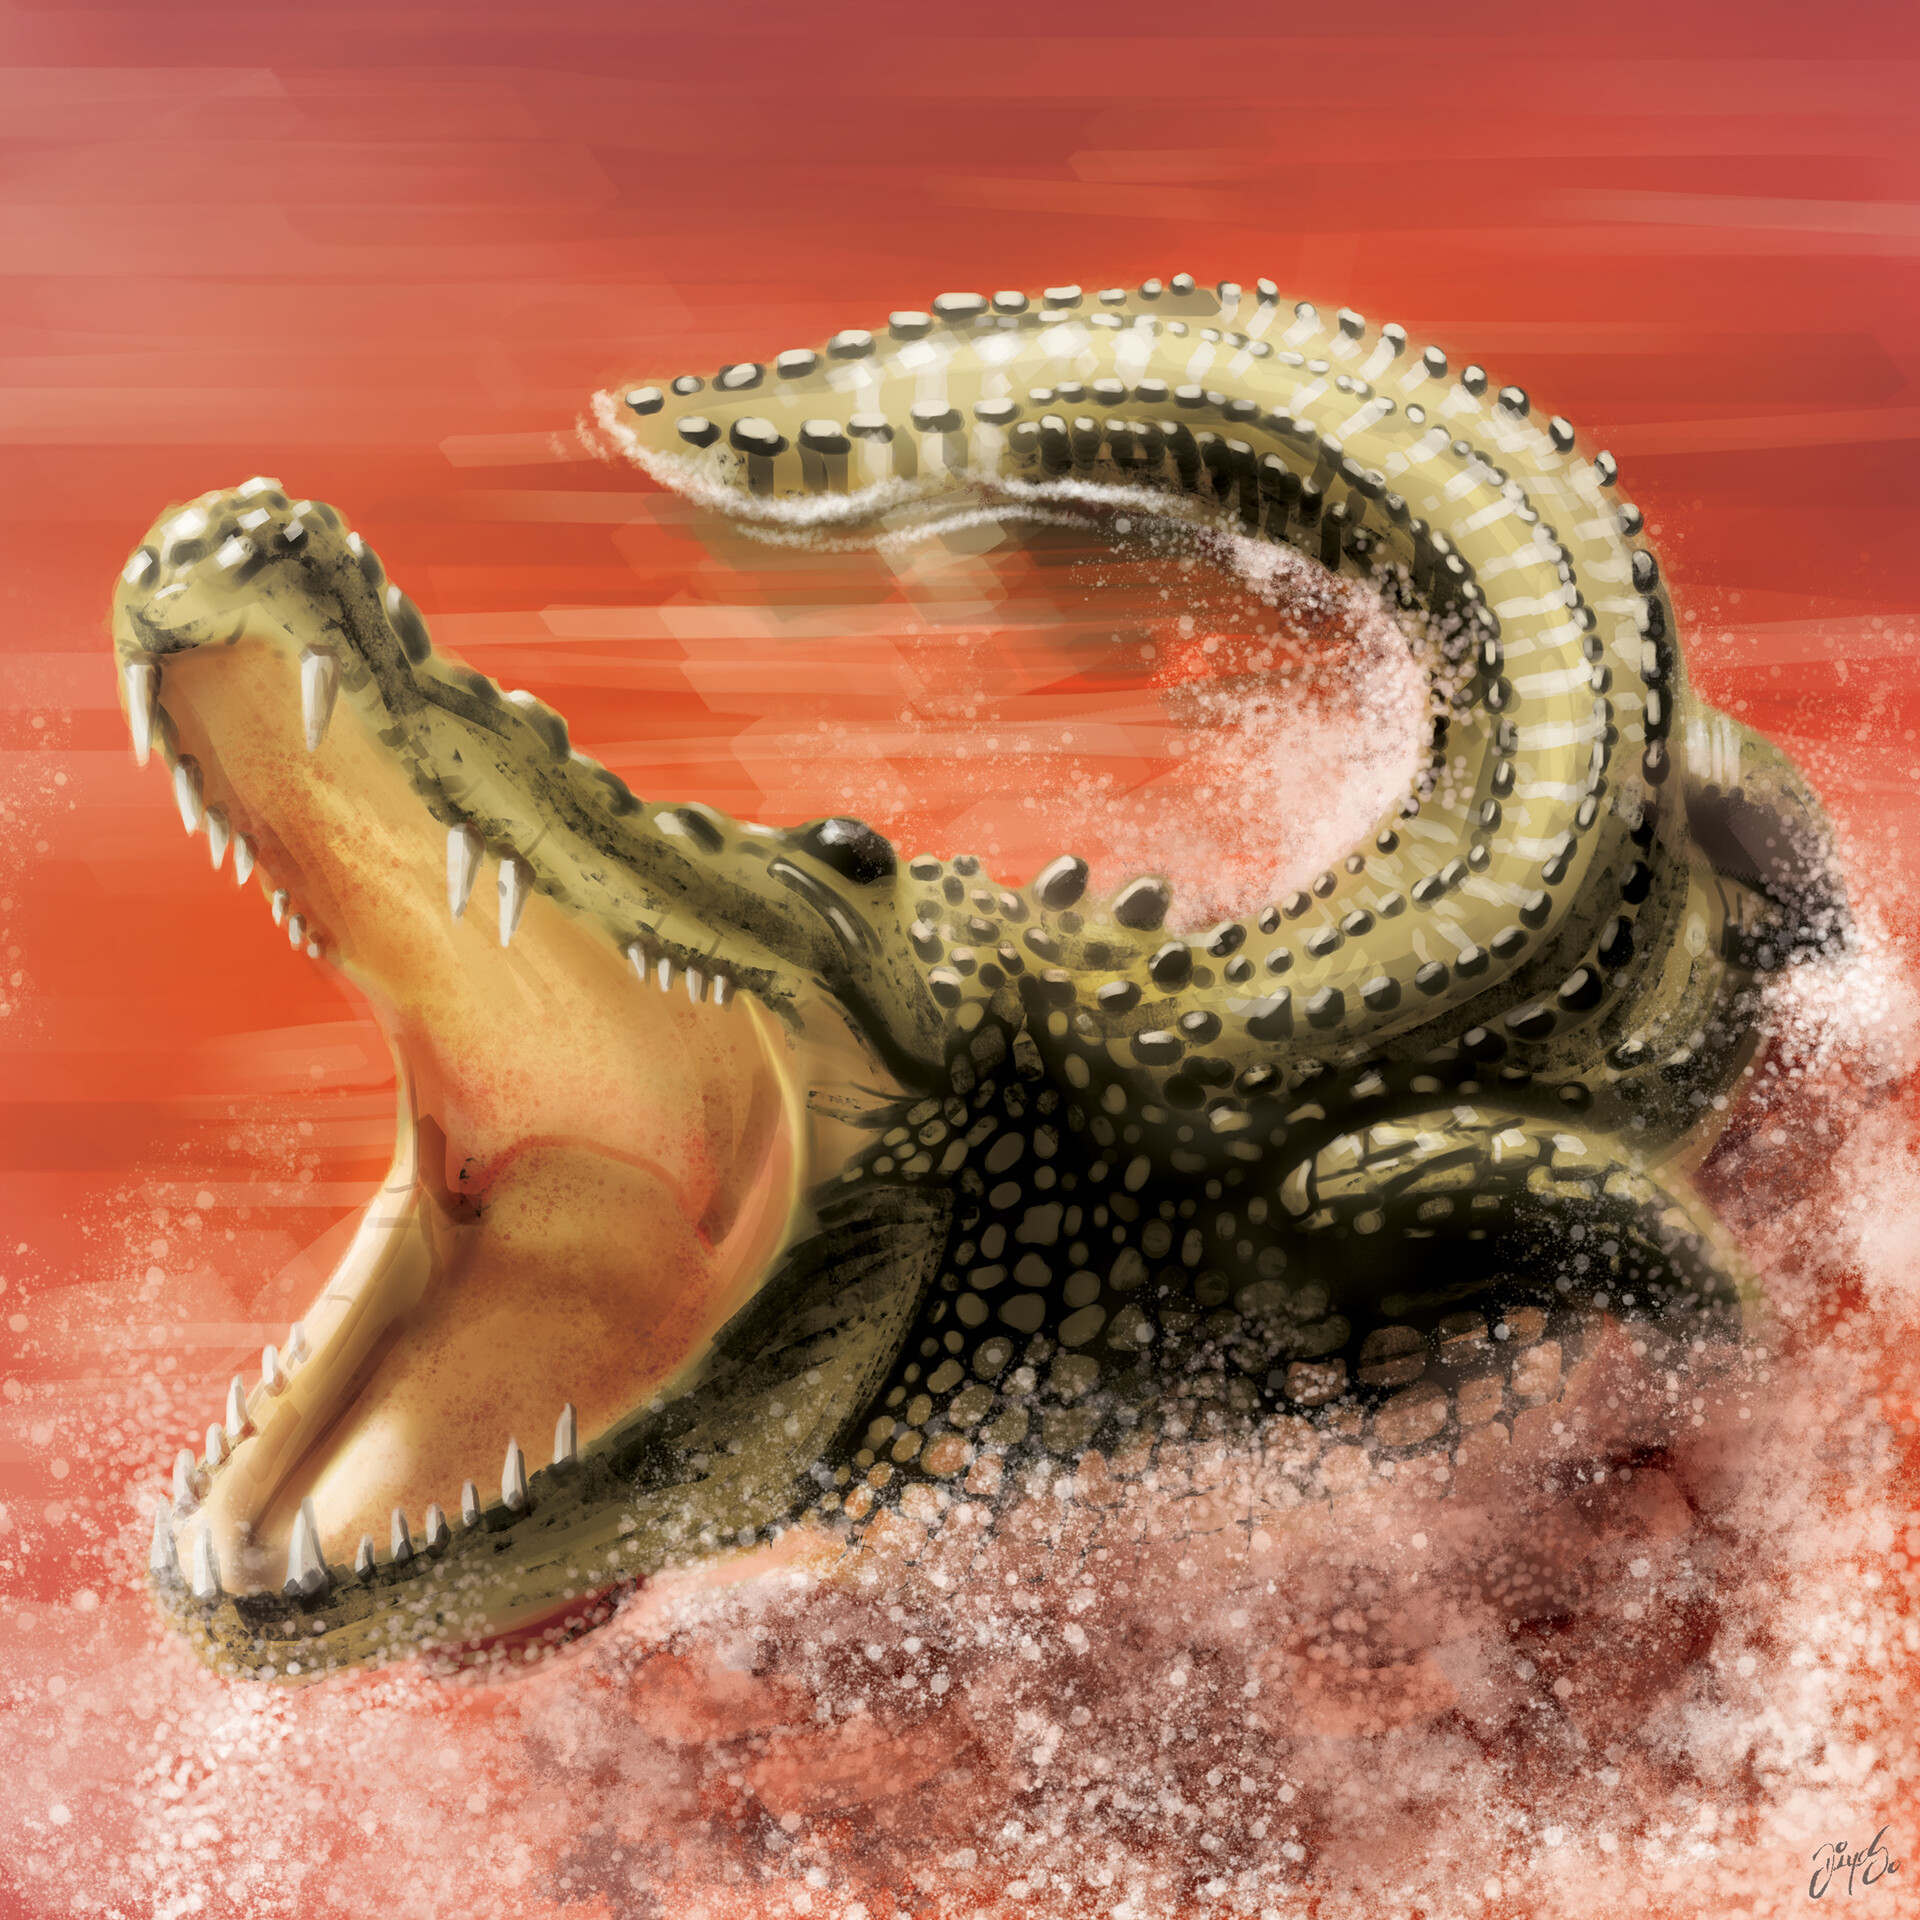 Tile illustration - Crocodile